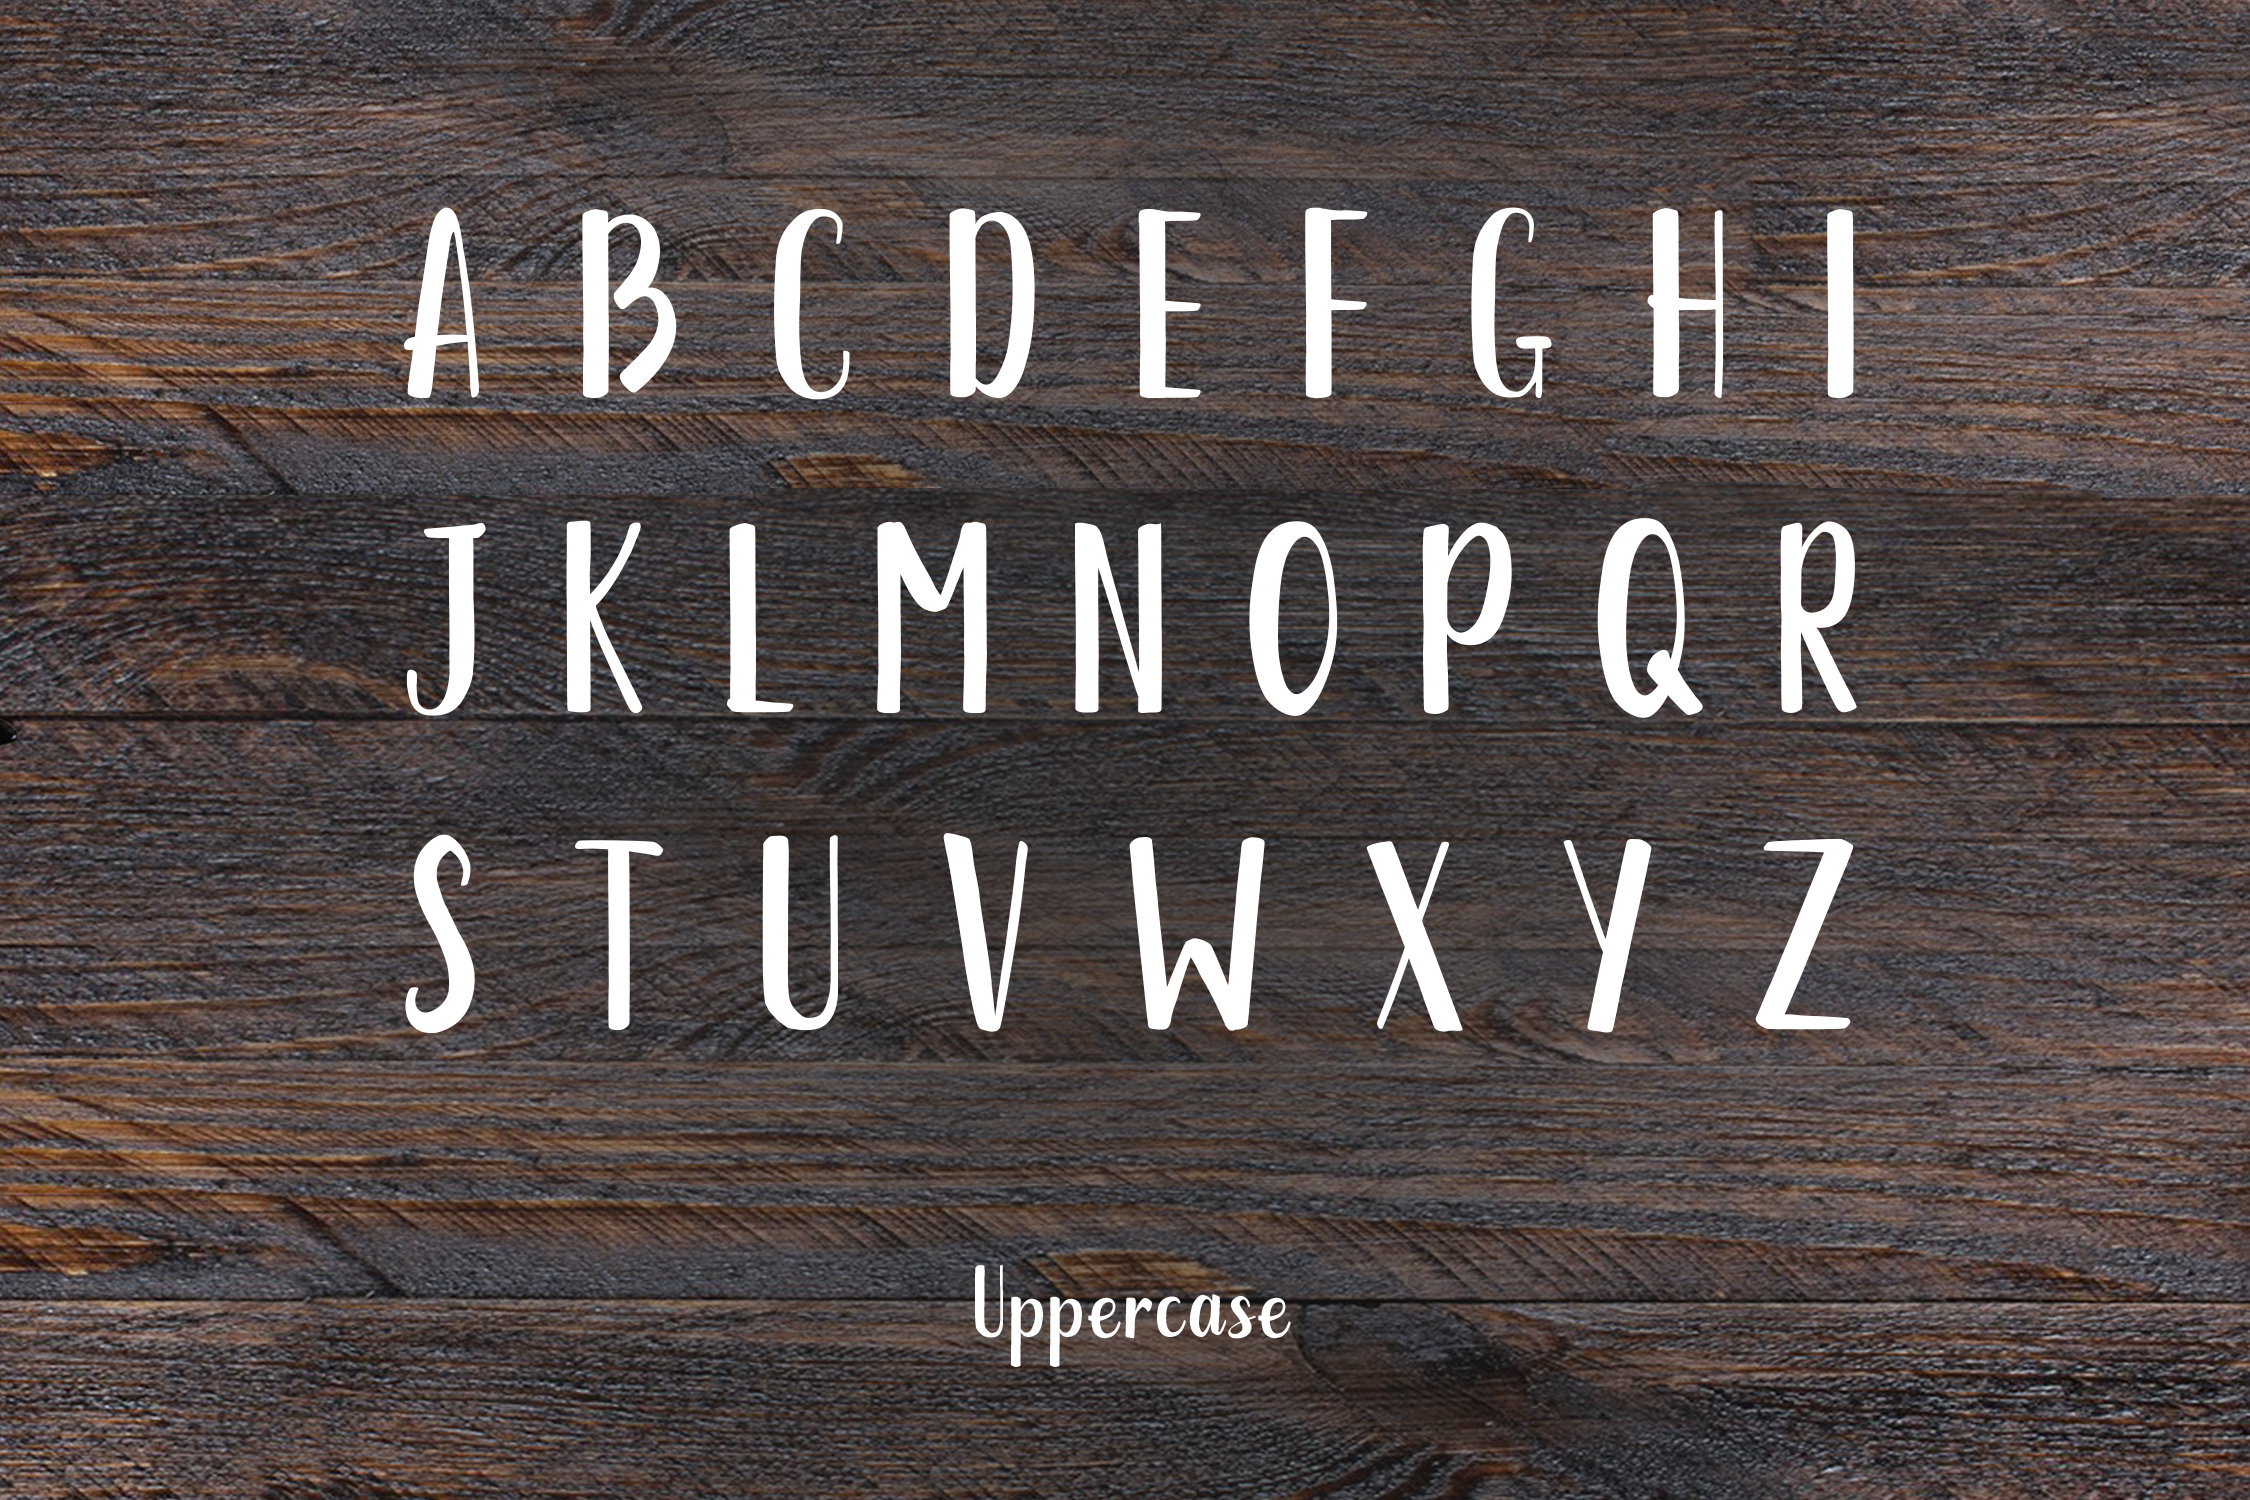 Austra Extended Brush Font example image 2